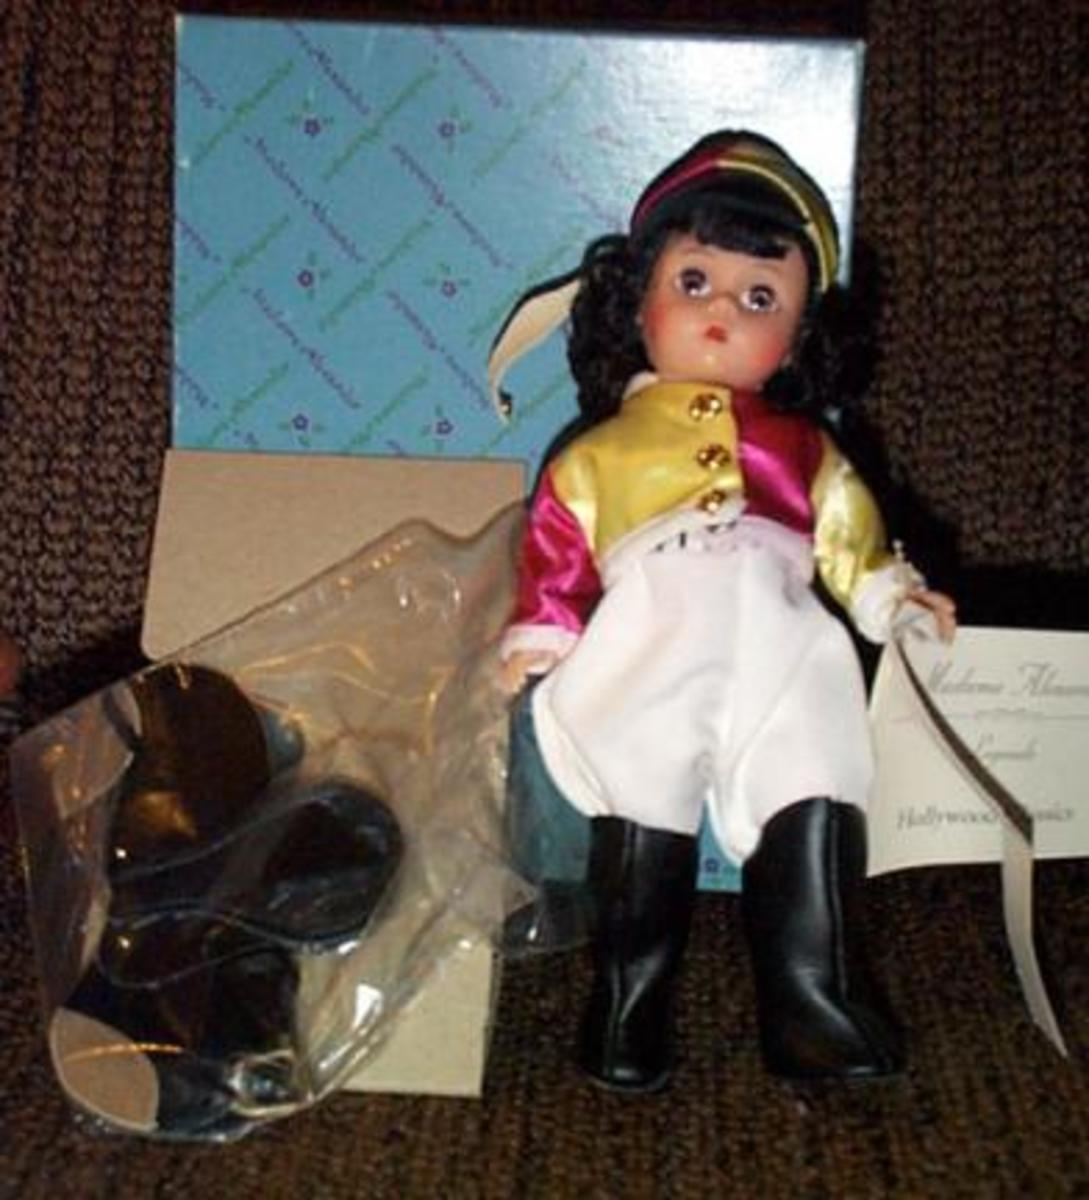 Liz Taylor National Velvet Horseback Riding Doll by Madame Alexander with the Wendy face